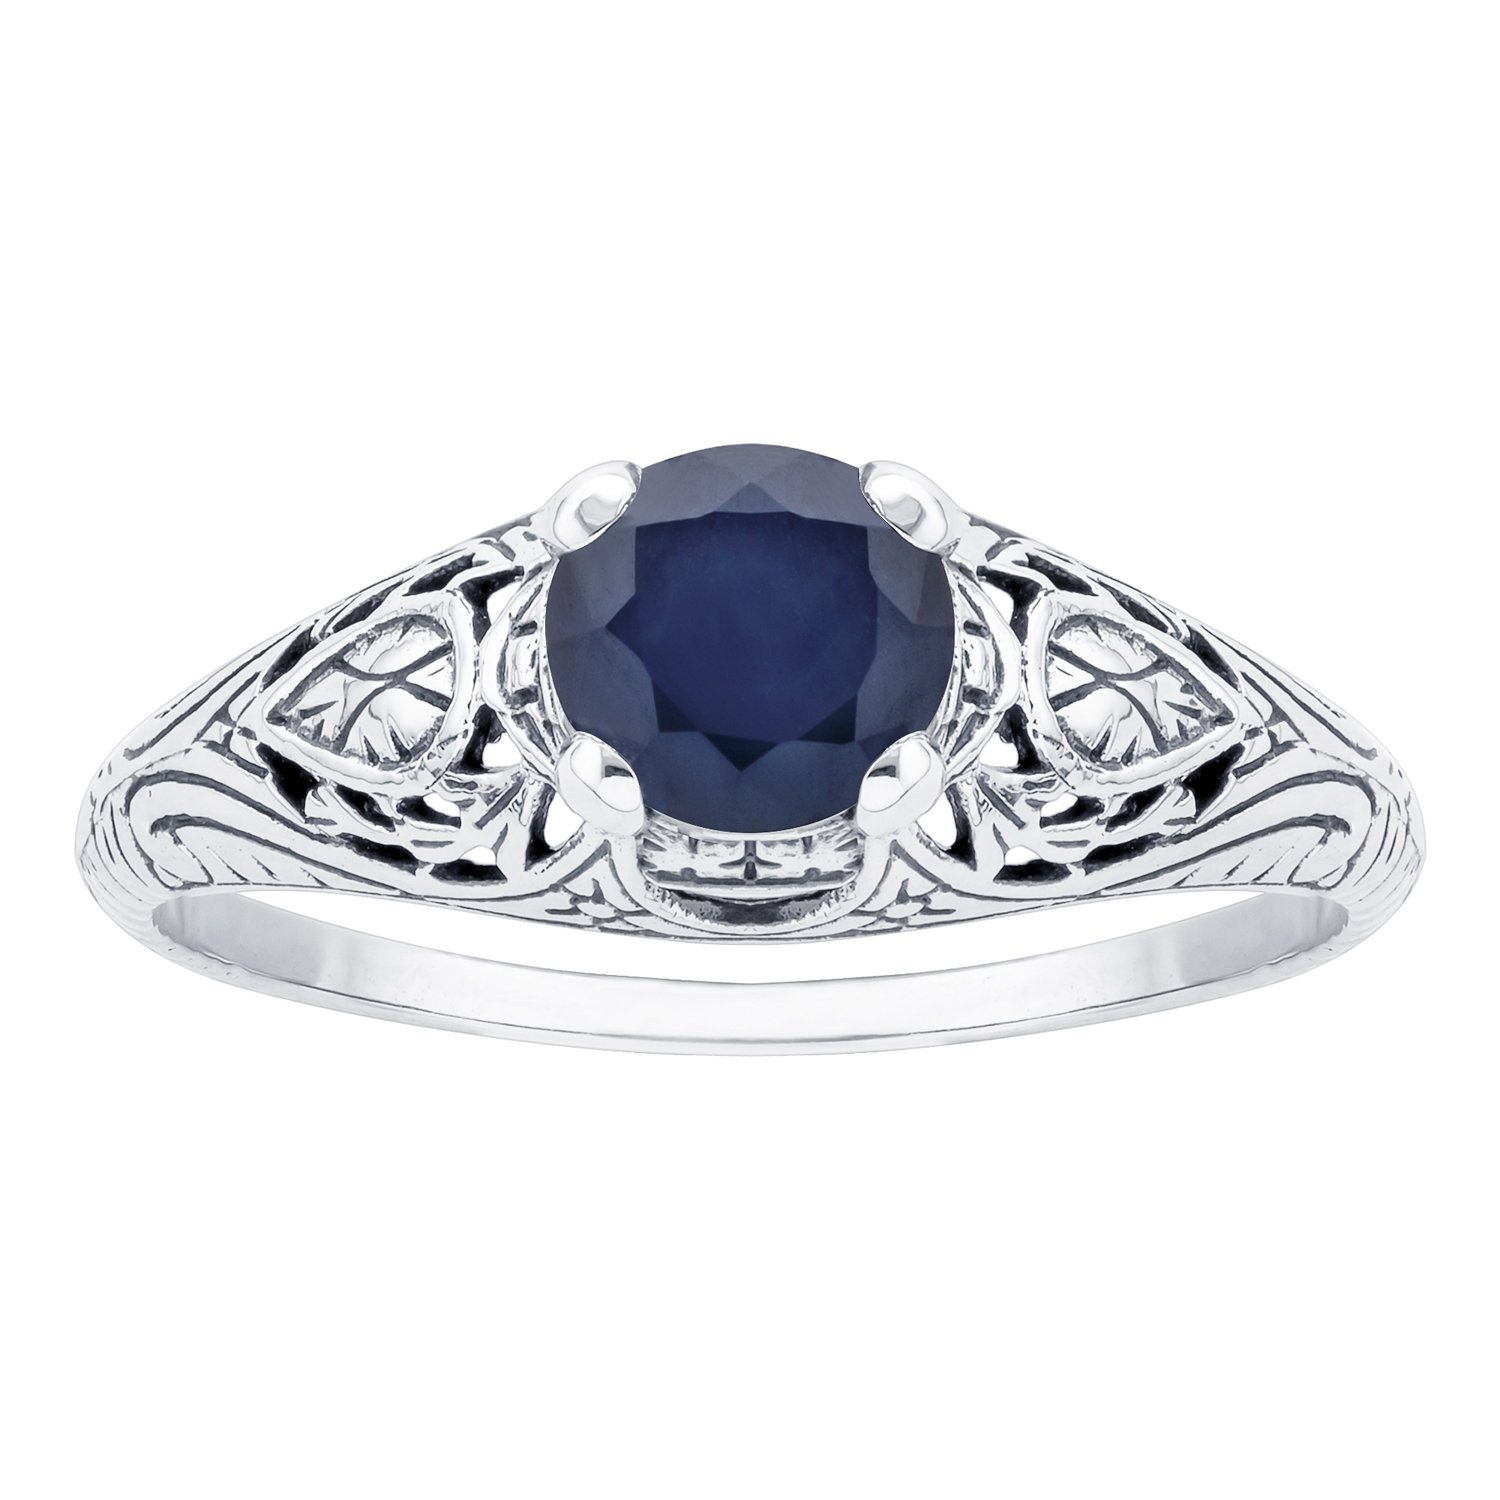 10k White Gold Vintage Style Genuine Round Sapphire Scroll Ring by Instagems